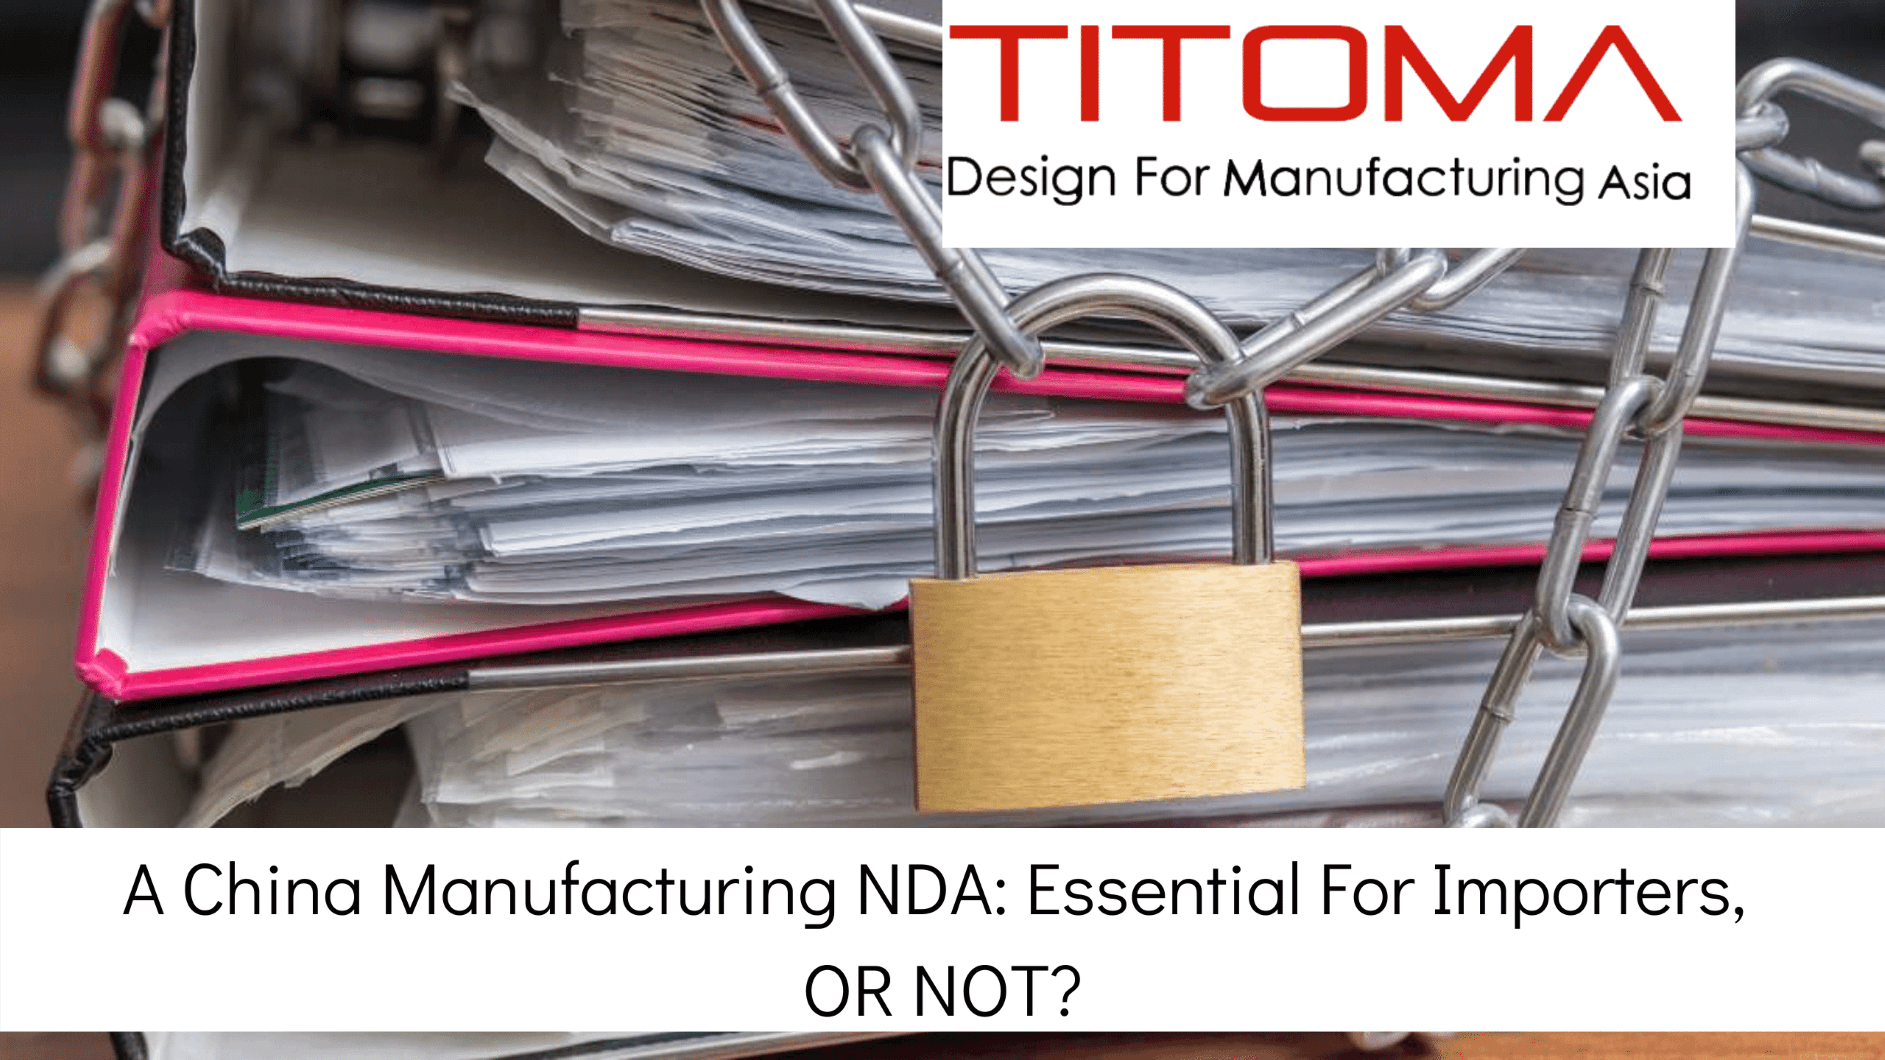 A china manufacturing NDA, essential for importers or not